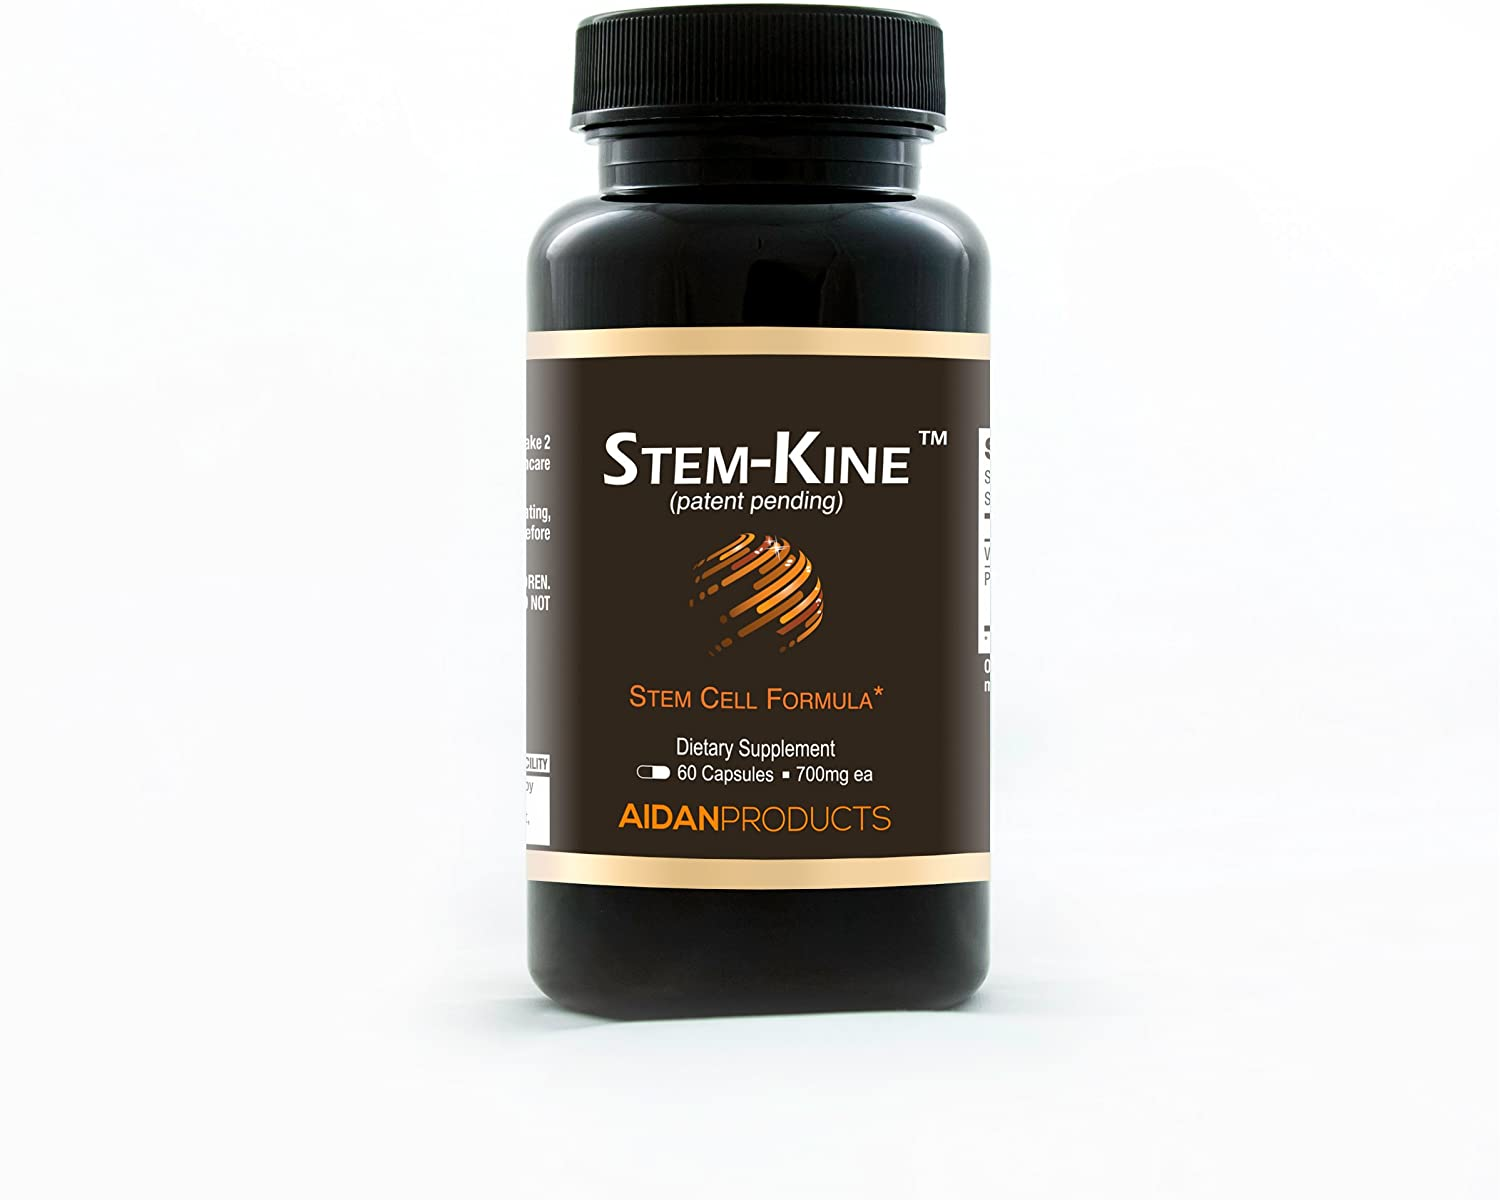 Stem-Kine (Aidan) – Aging and Stem Cell Support